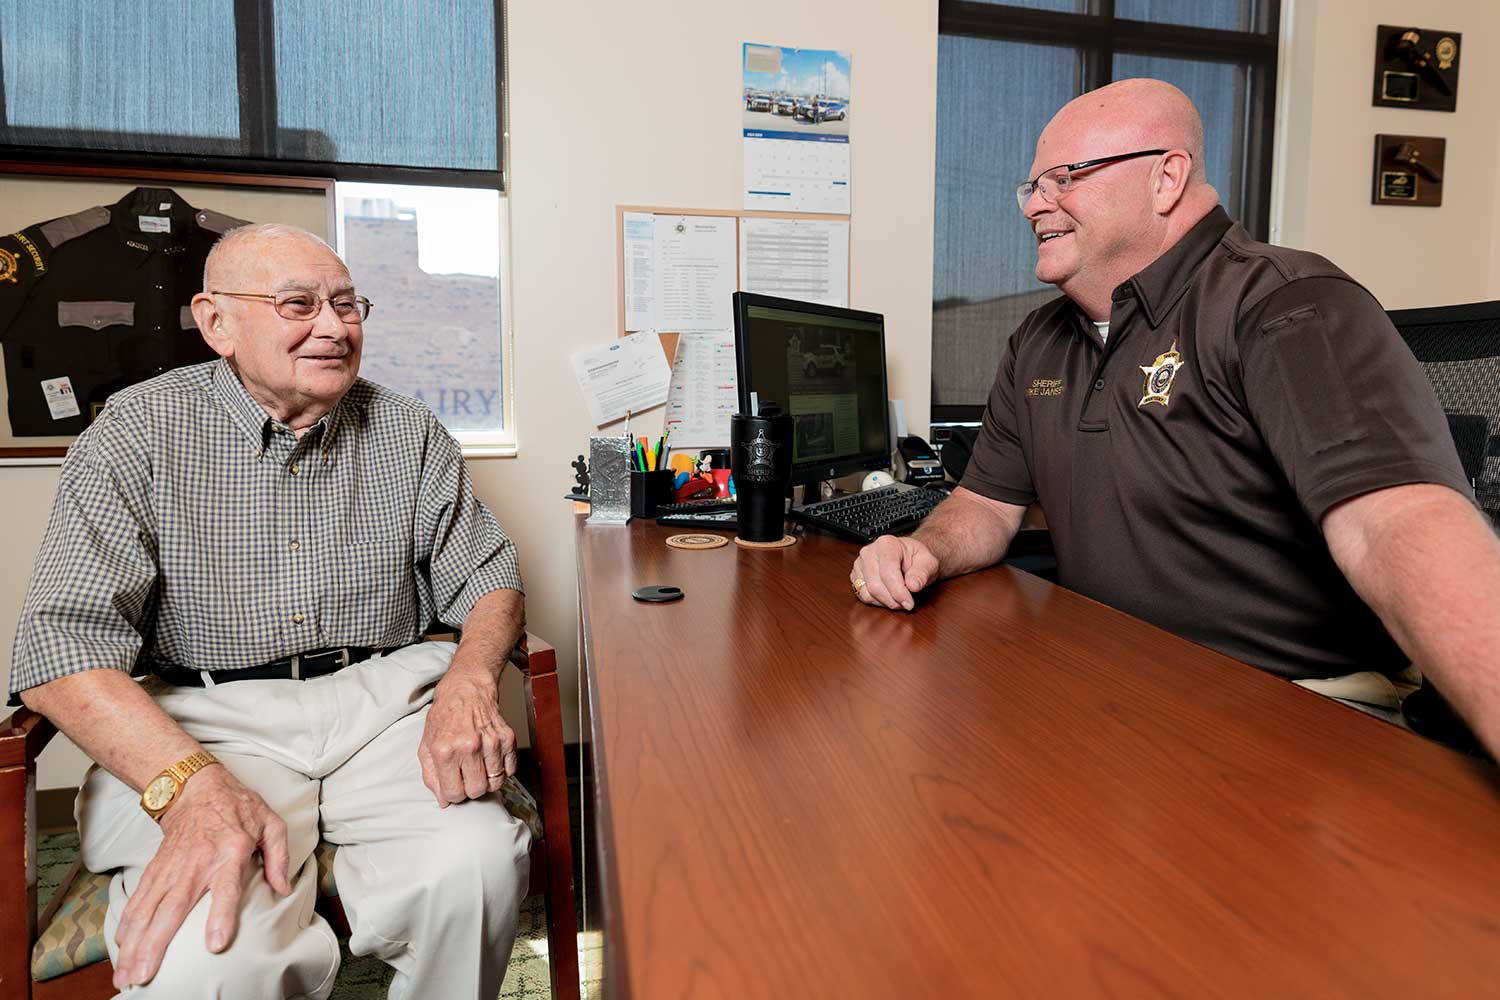 Campbell County Sheriff Mike Jansen talks with retired deputy John Sayers after members of the sheriff's office presented him with a framed uniform. (Photo by Jim Robertson)